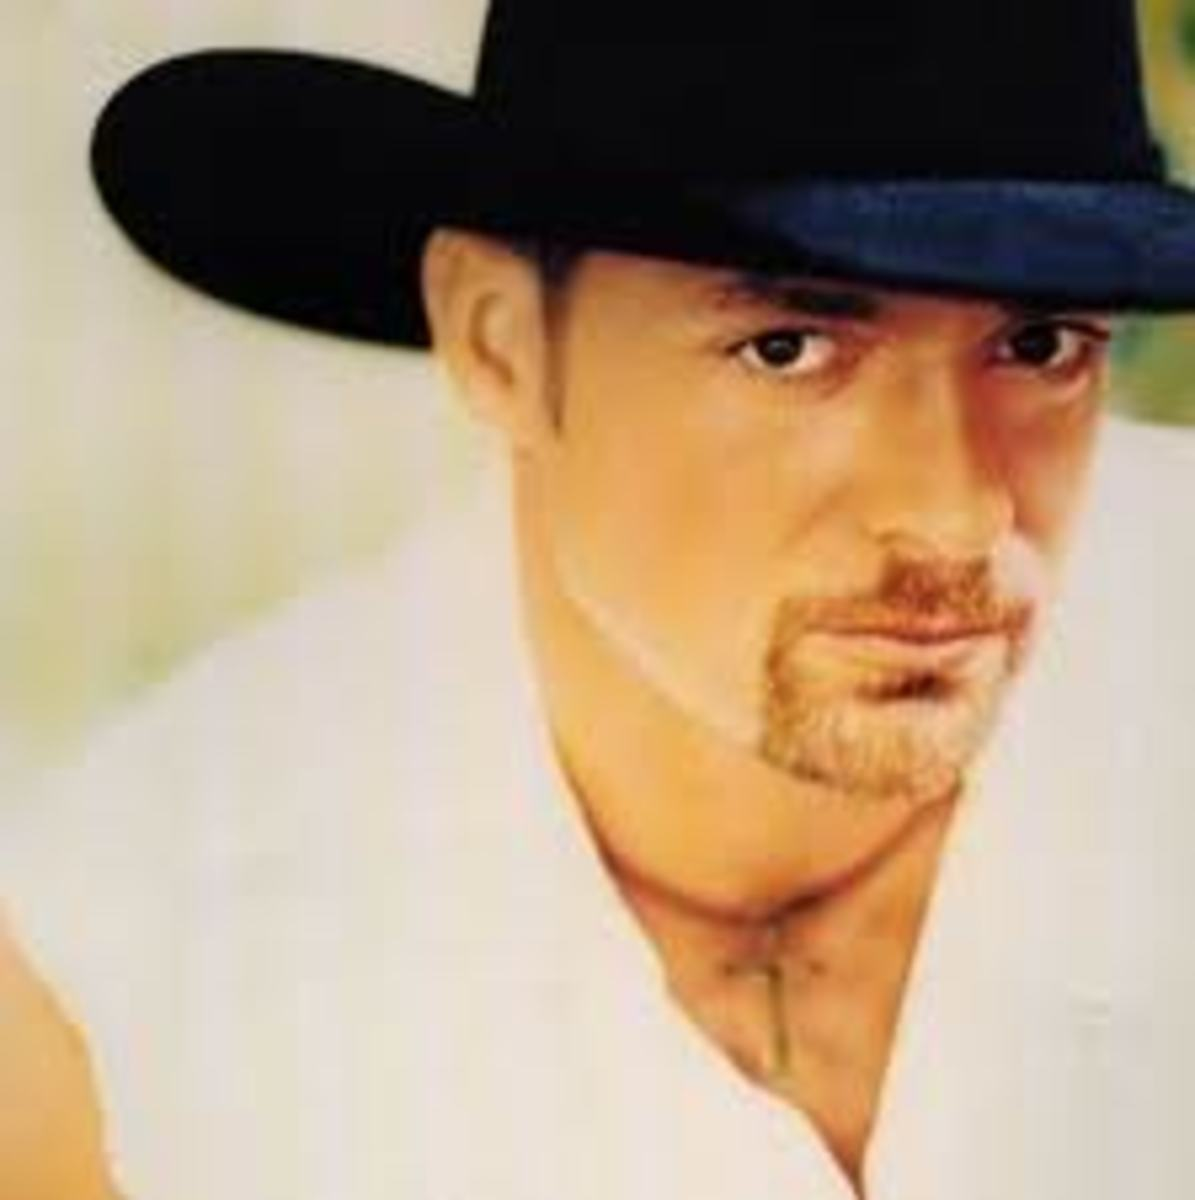 Open Letter to Chris Cagle - Country Music Star